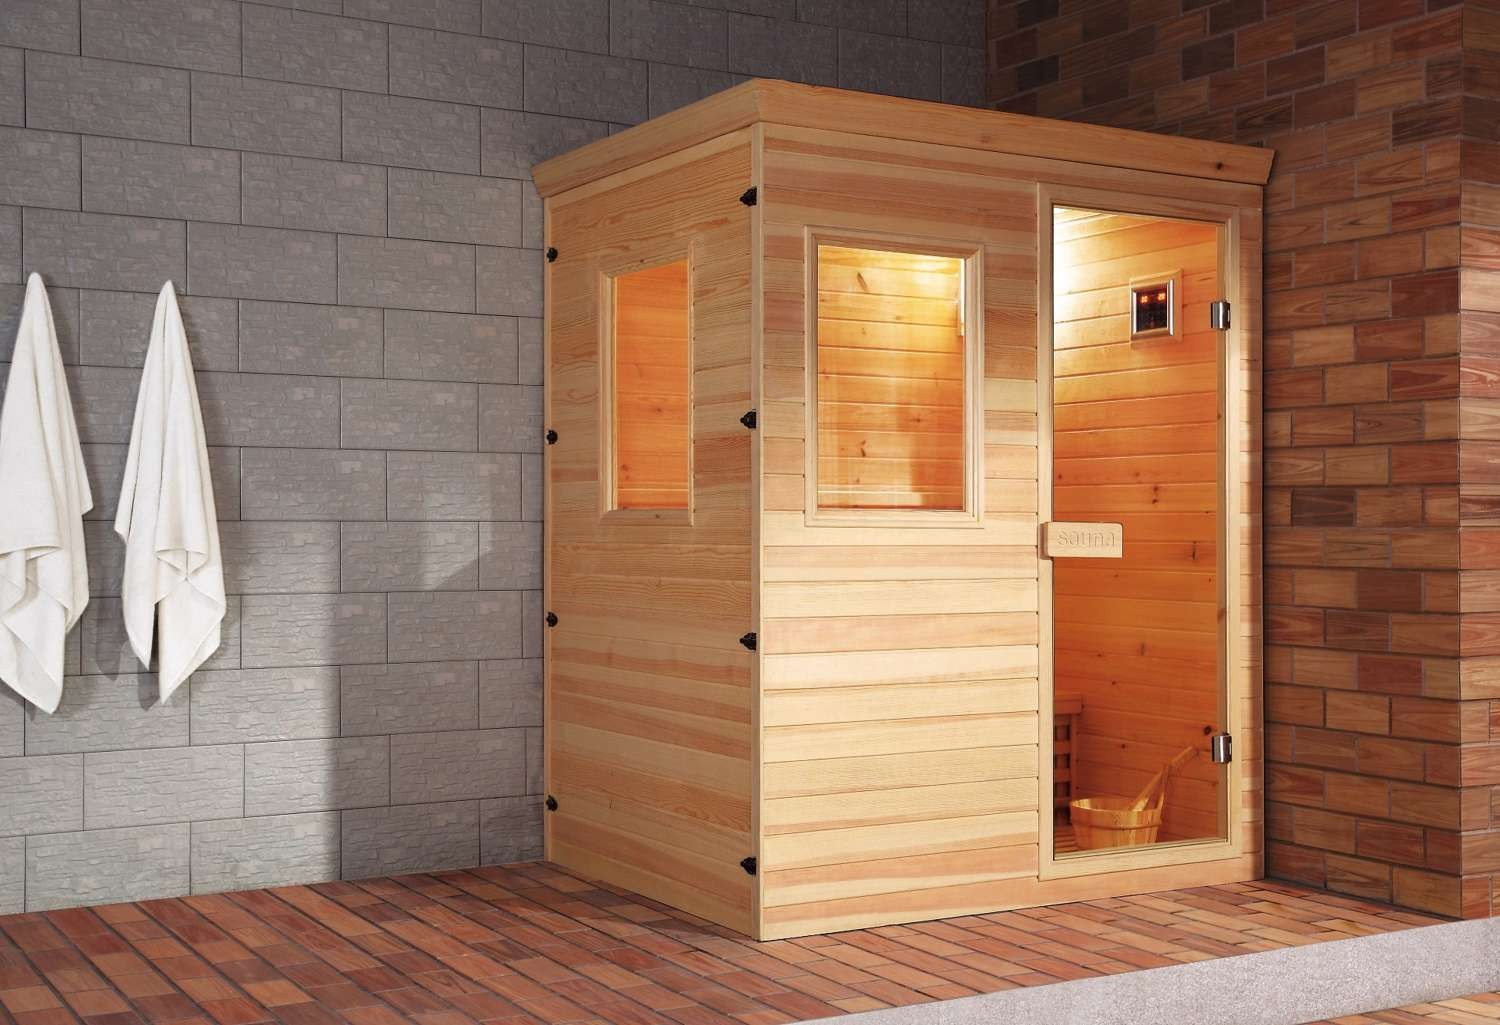 blog del hidromasaje archivo por categor as saunas secassaunas secas saunas de infrarrojos y. Black Bedroom Furniture Sets. Home Design Ideas